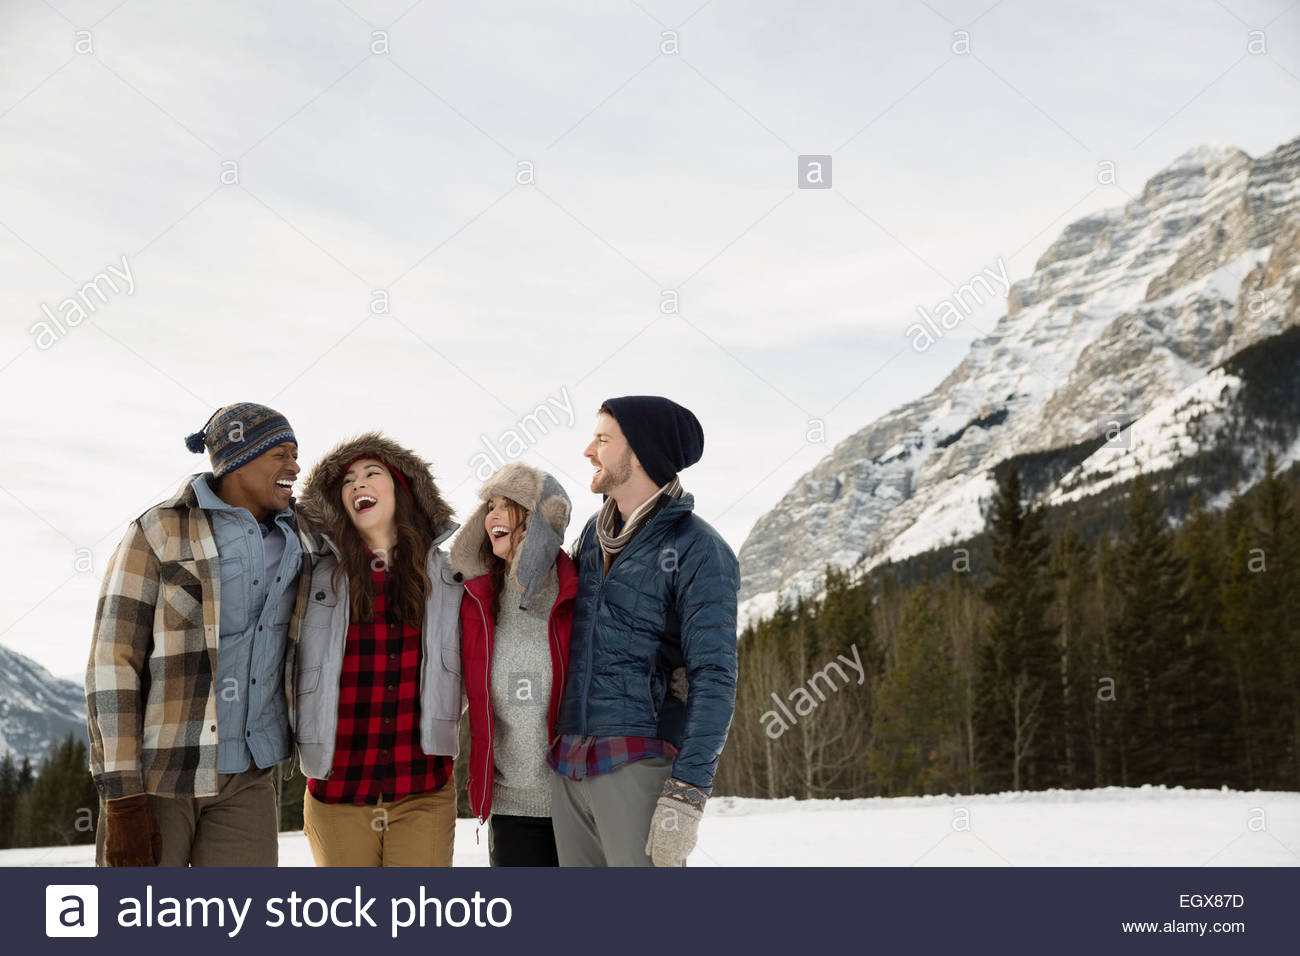 Couples laughing below snowy mountain - Stock Image